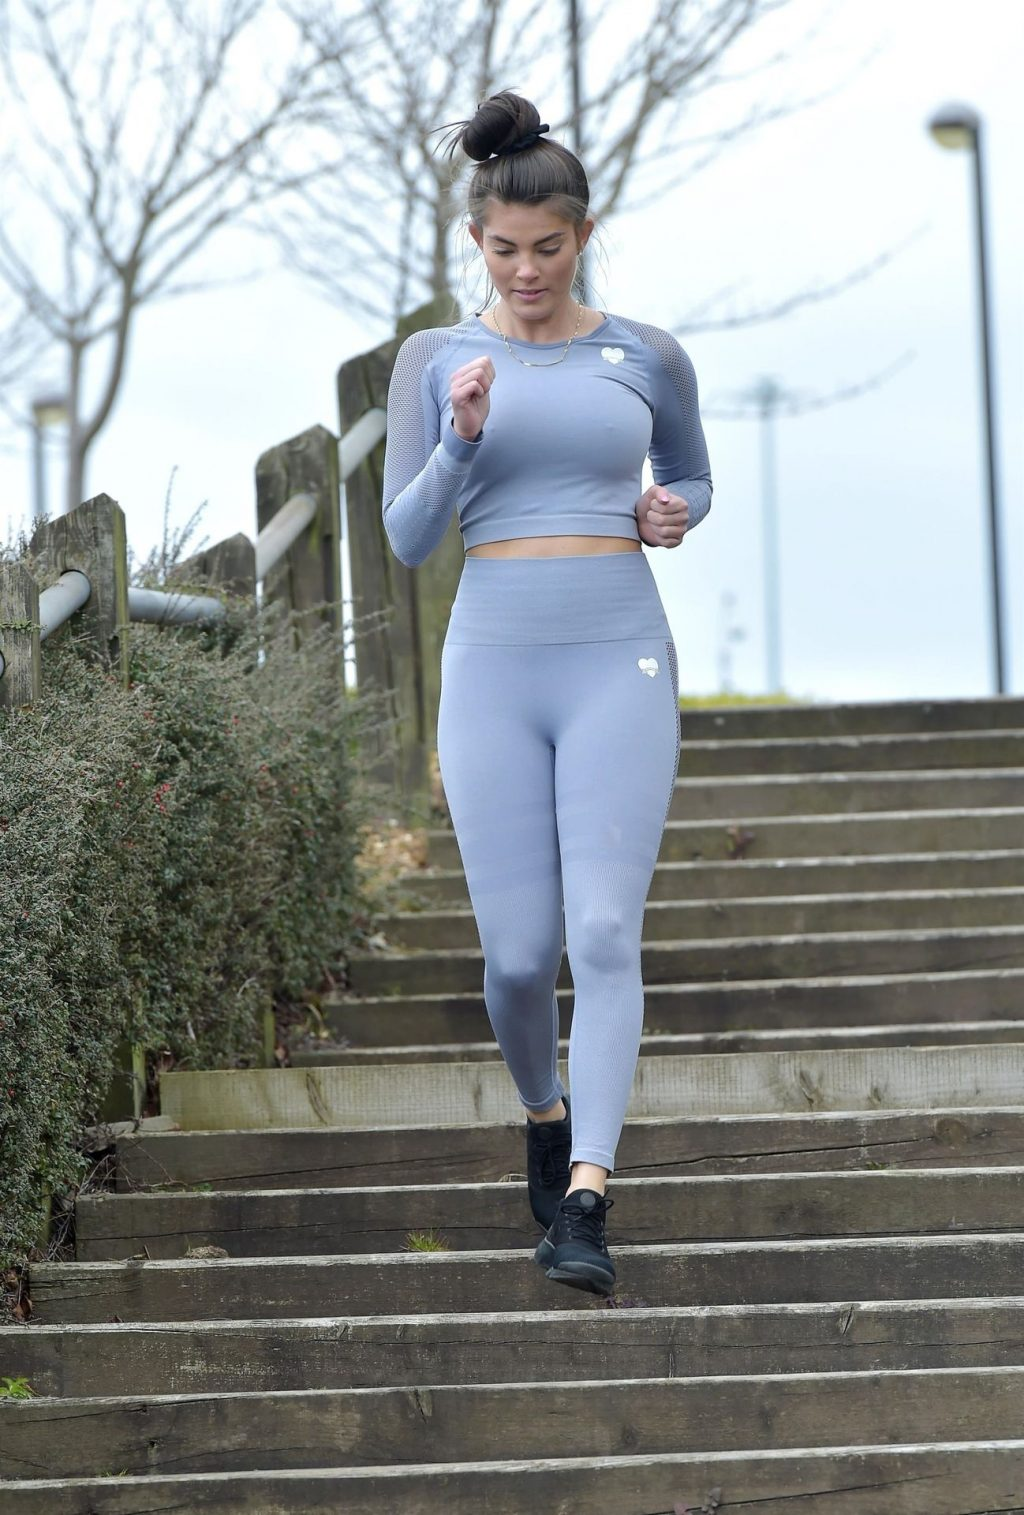 Rebecca Gormley Has a Wardrobe Mishap as She Shows Off a Mud Stain on Her Backside After Exercising (16 Photos)